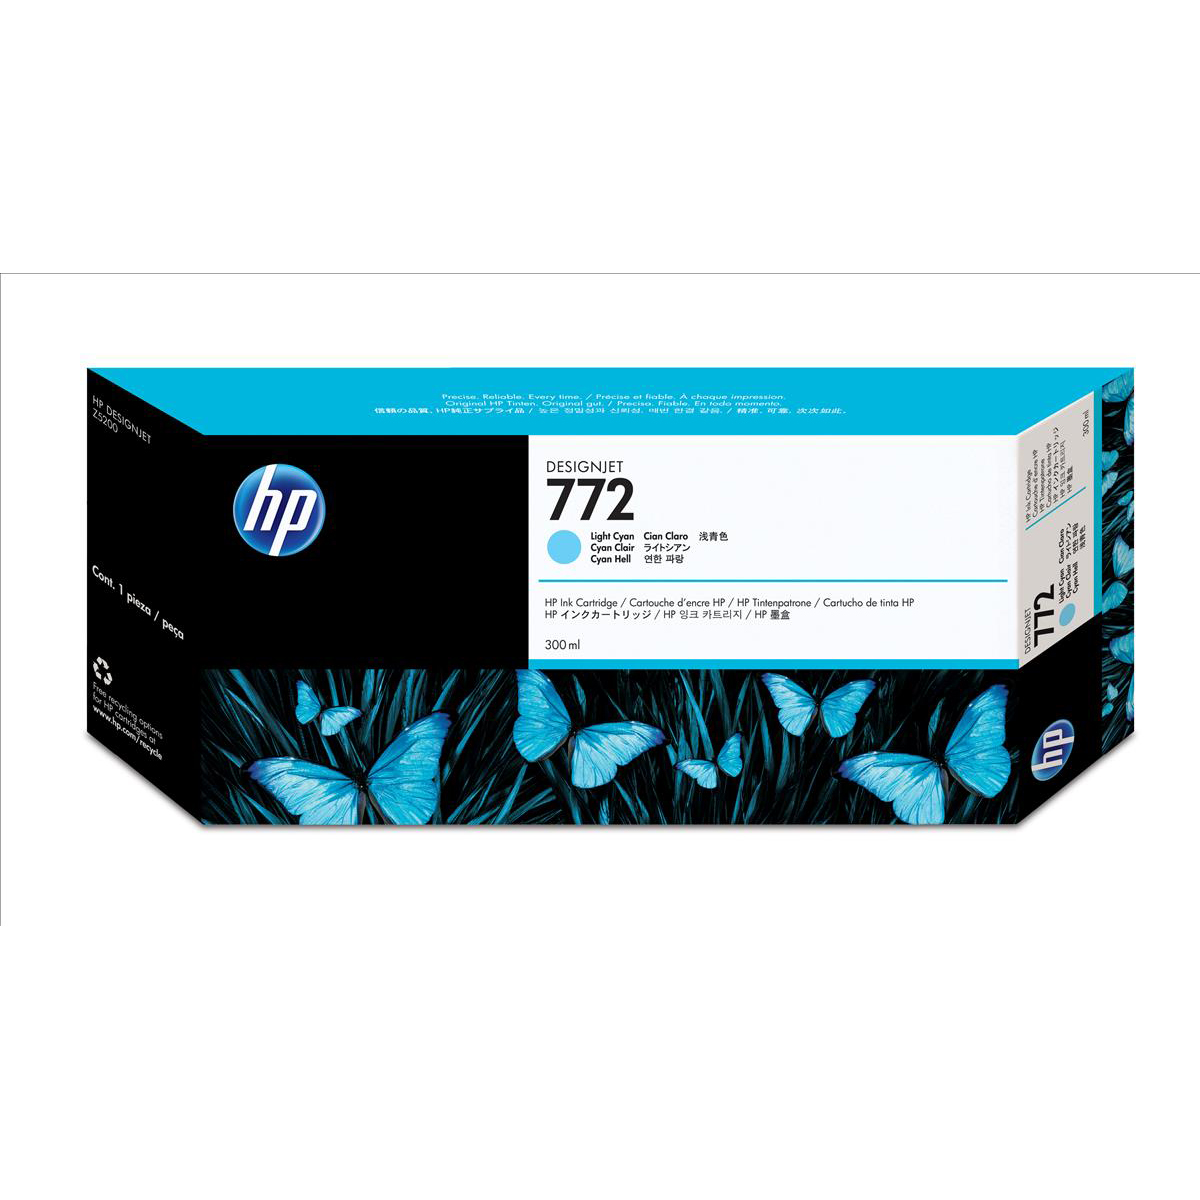 HP 772 LightCyan Ink Cart 300ml for HP Z5200 PostScript Printer Ref CN632A *3 to 5 Day Leadtime*